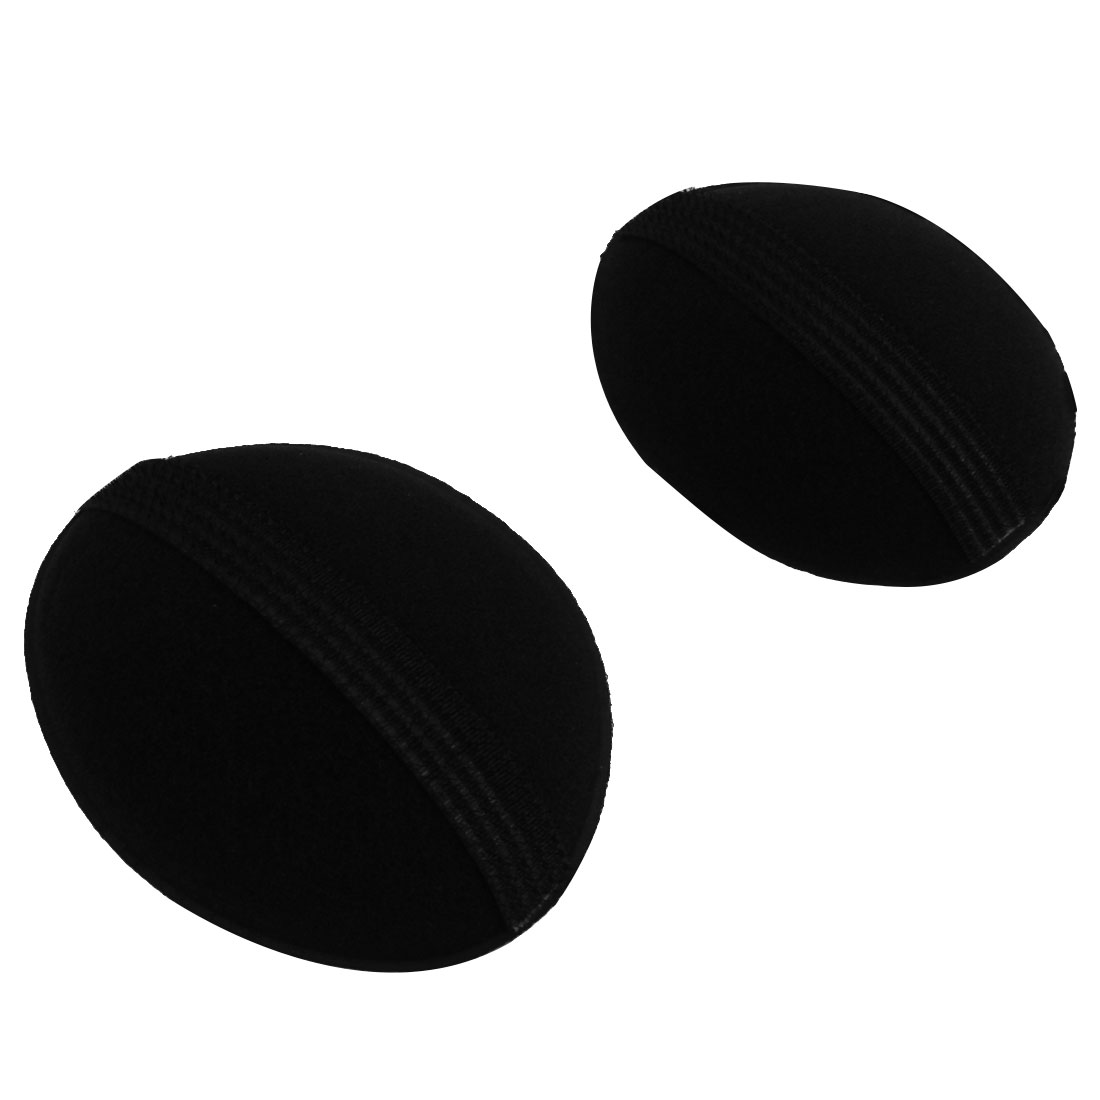 Hairdressing Bump It Up Volume Hair Base Styling Insert Black 2 PCS